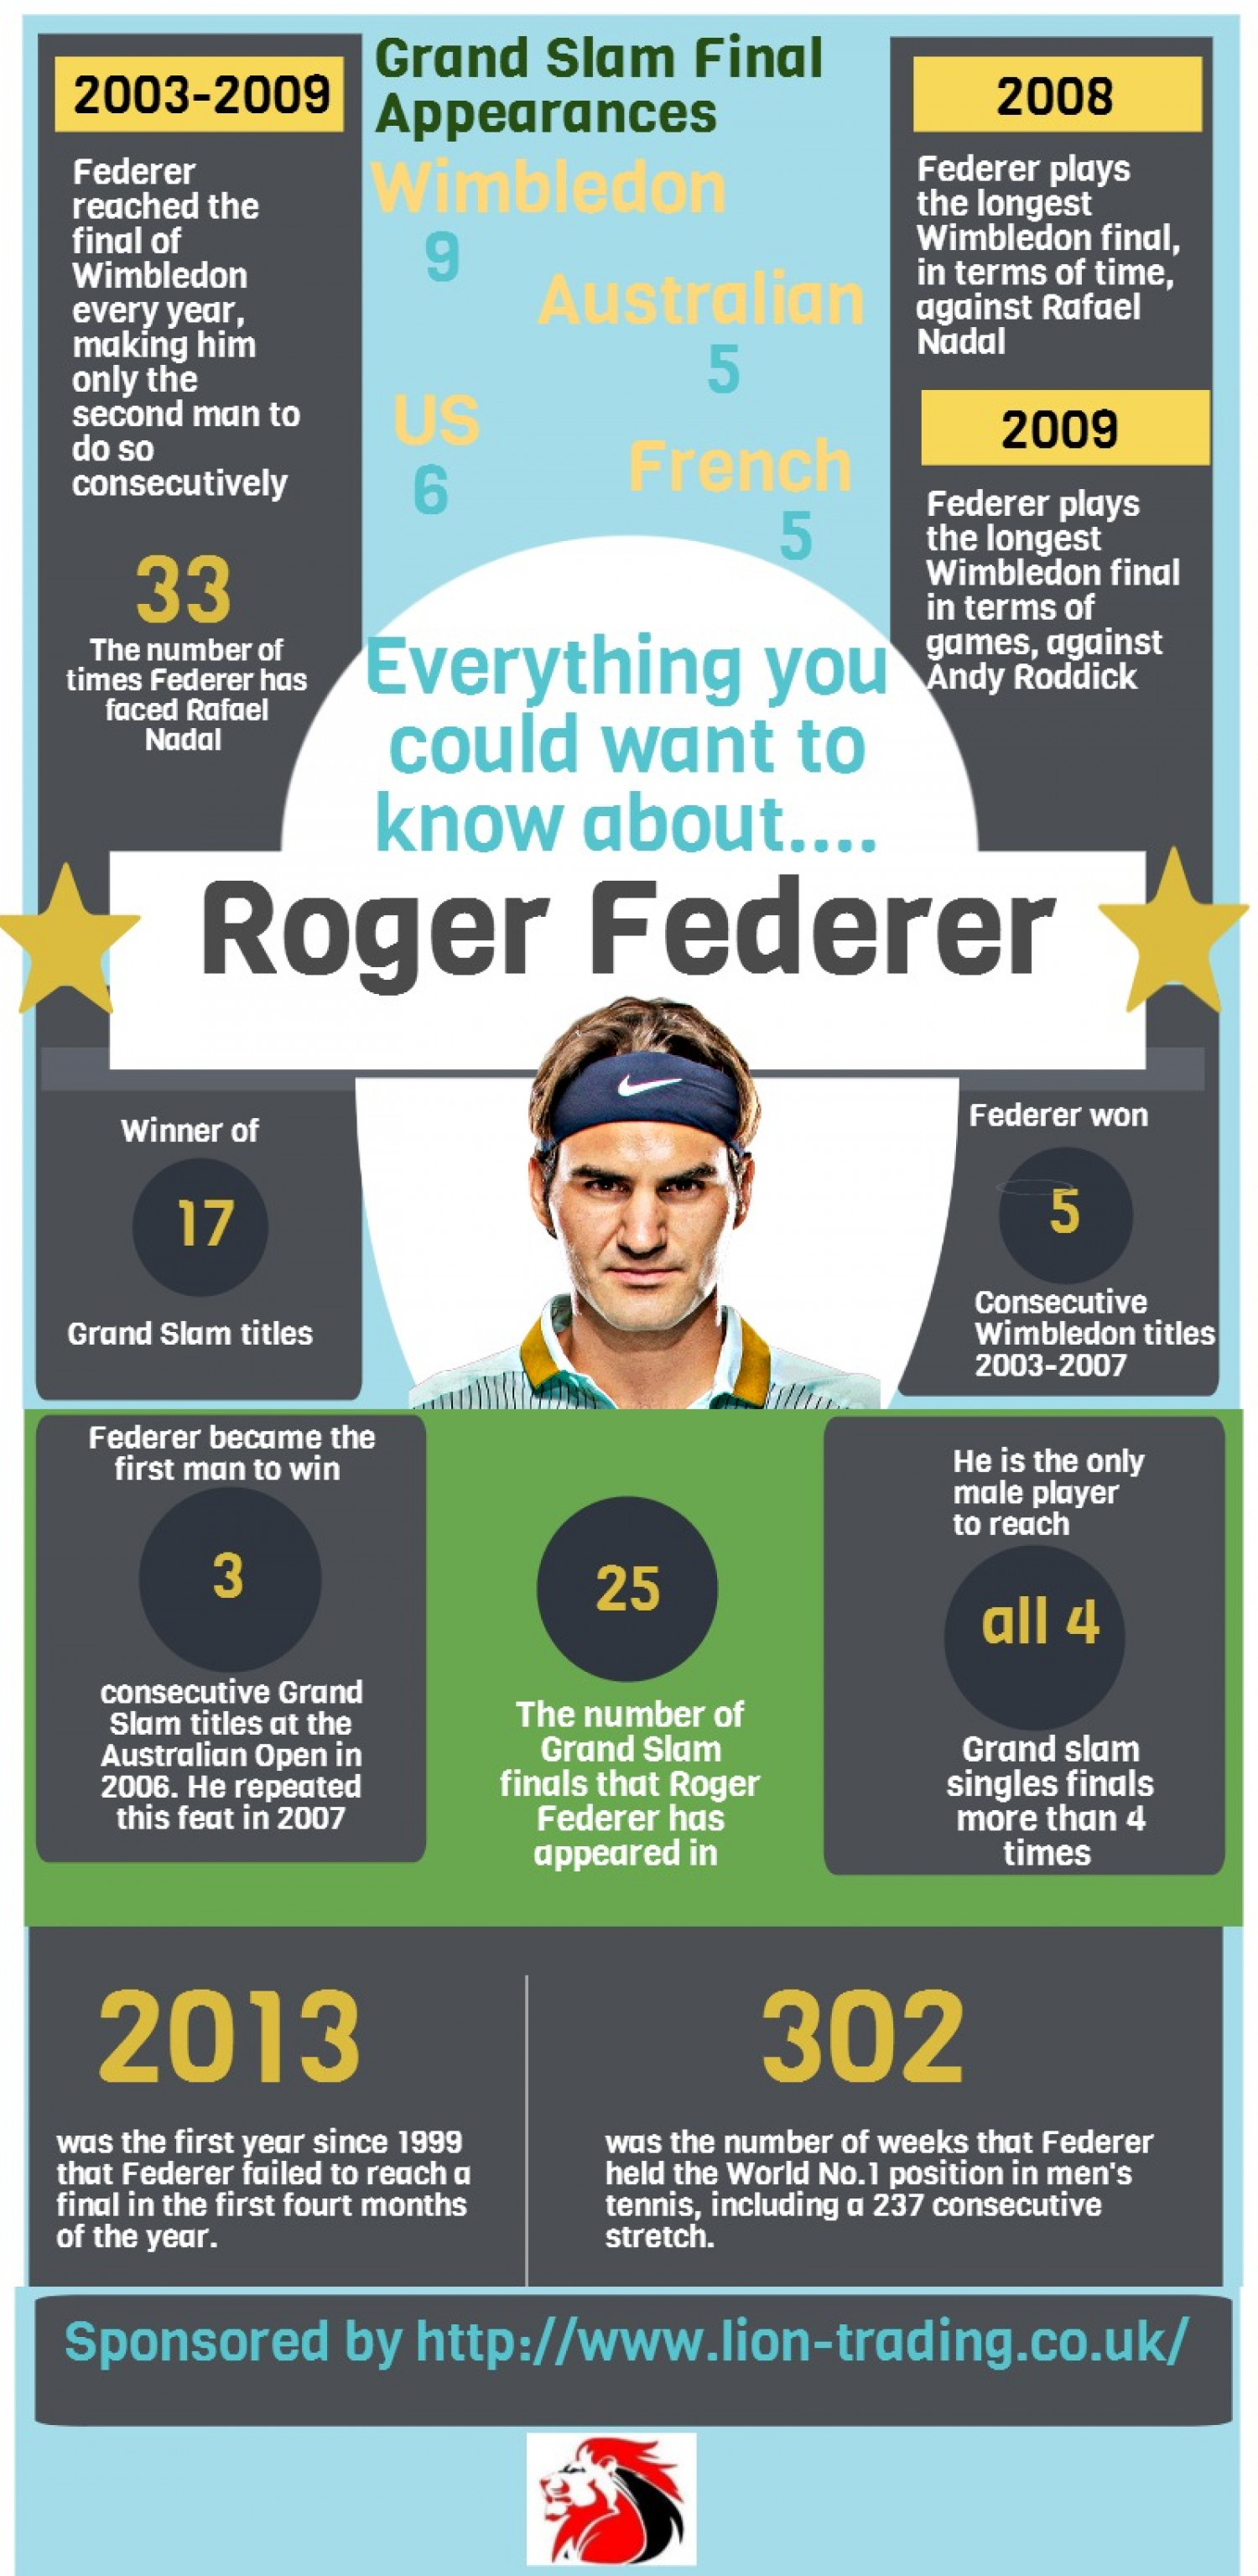 Everything you could want to know about Roger Federer Infographic